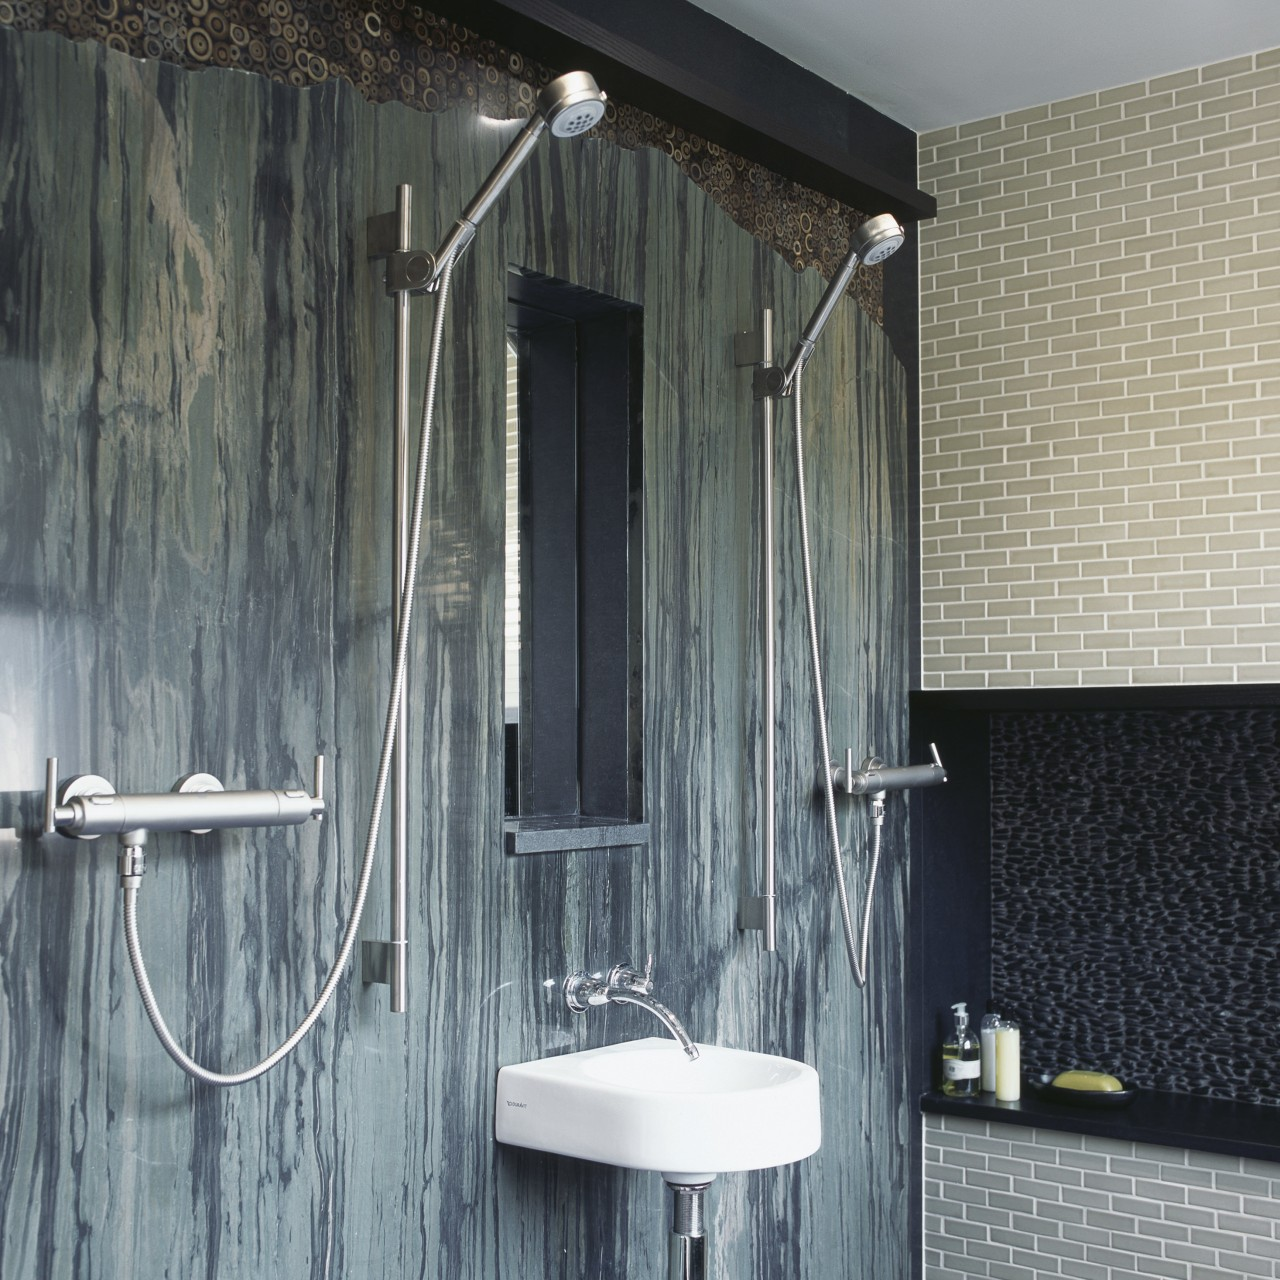 A bamboo-pattern granite forms a feature wall. The bathroom, interior design, plumbing fixture, room, wall, window, gray, black